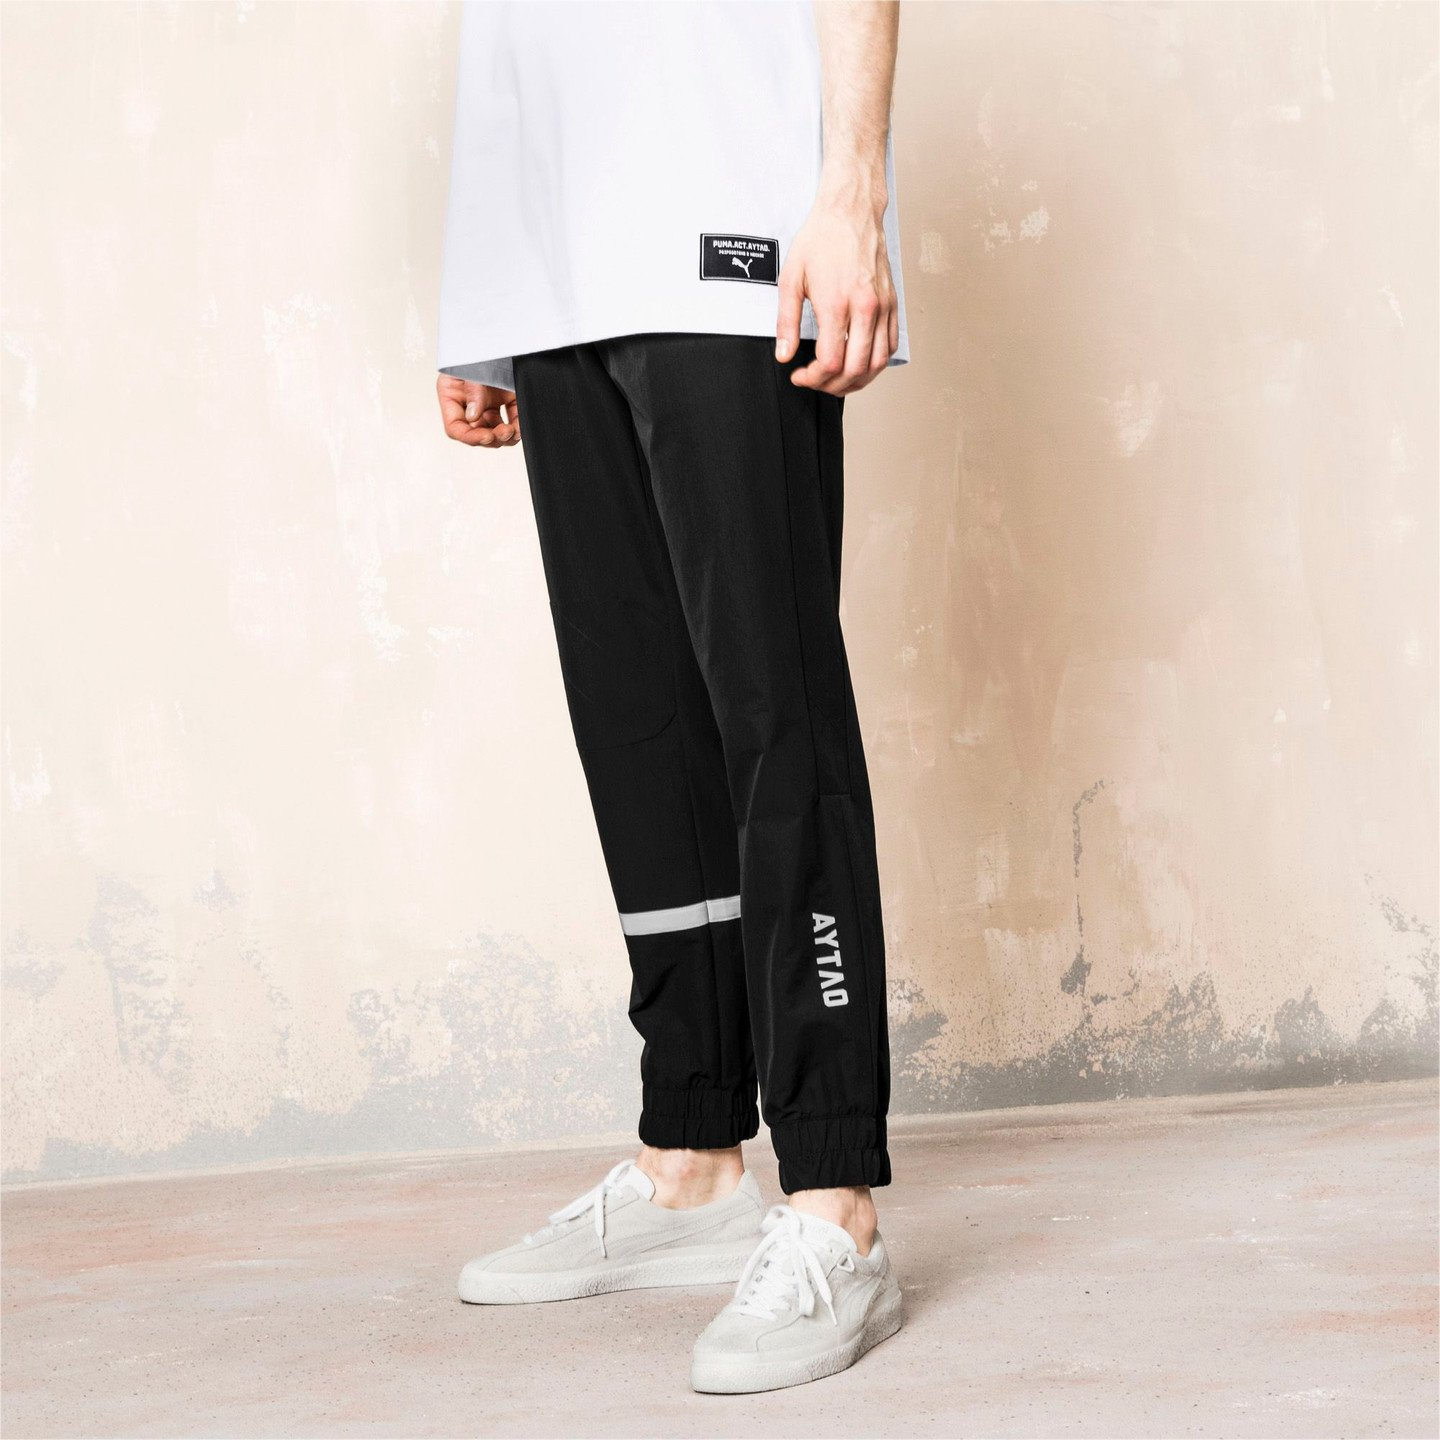 Puma Track Pants x Outlaw Moscow Puma Black / Reflective Silver 576873 01